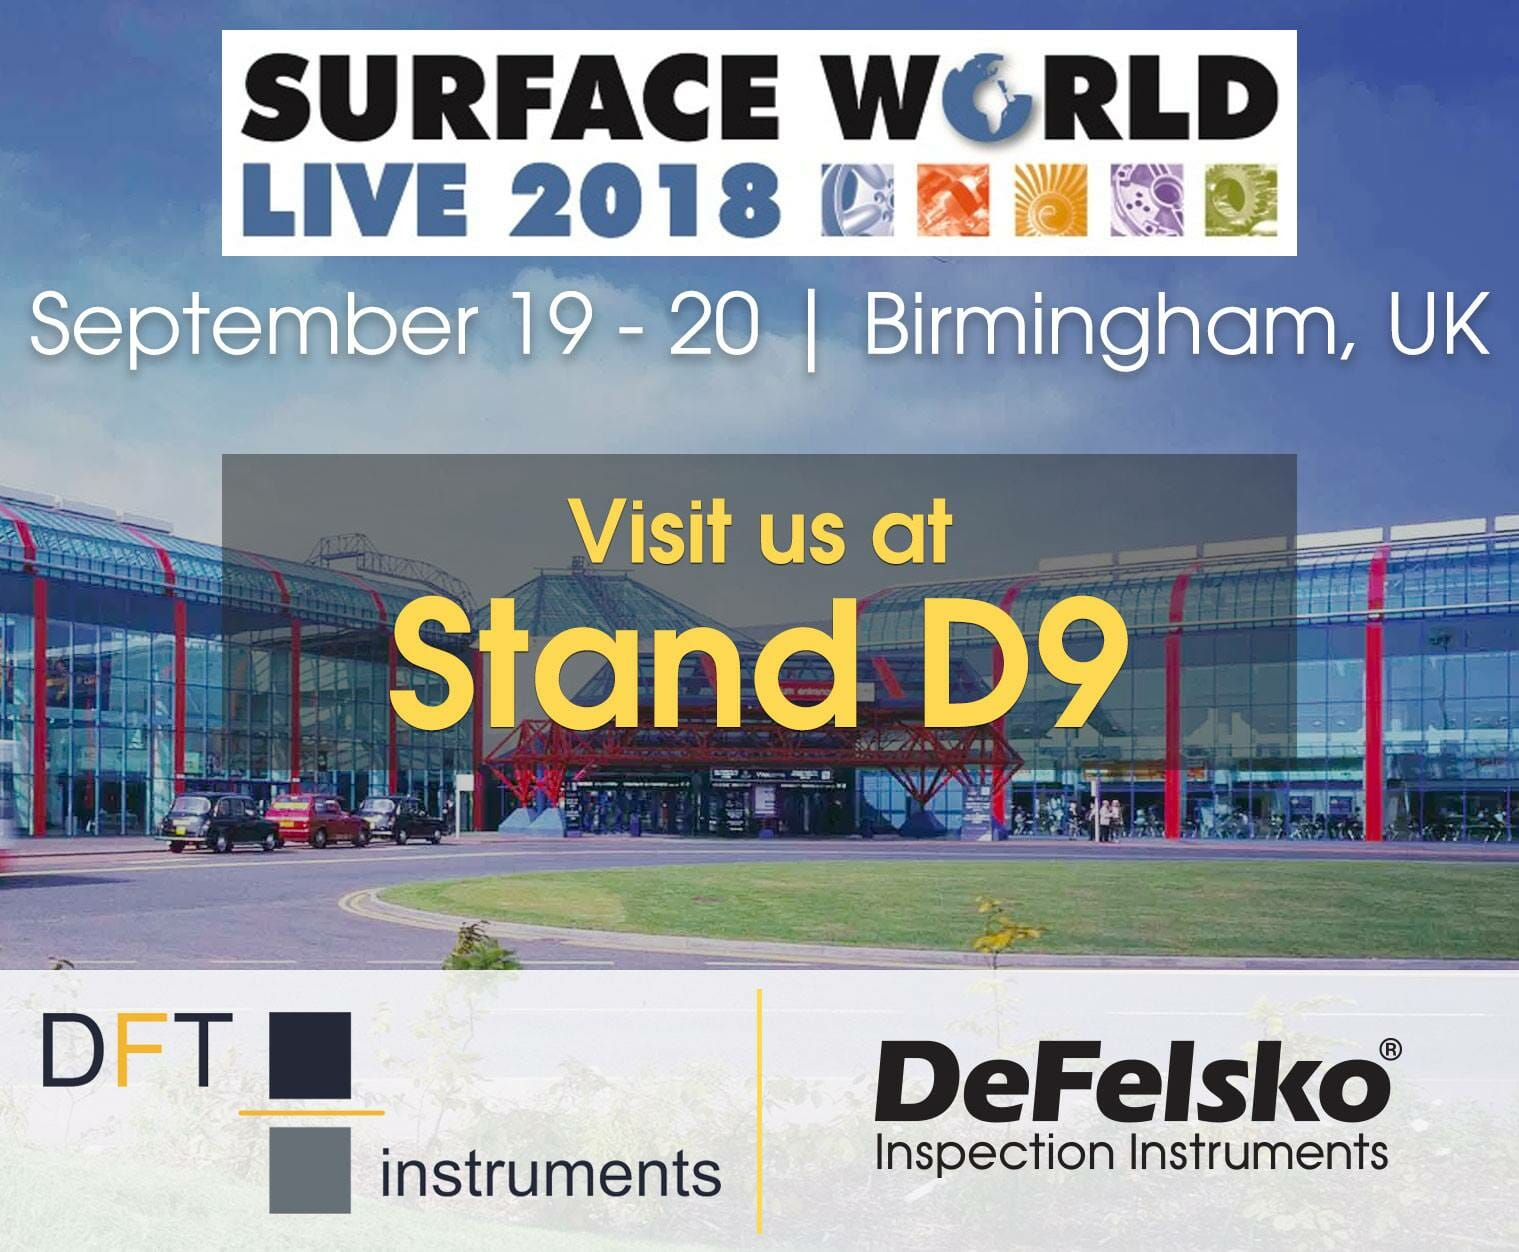 Visit Us At Surface World 2018